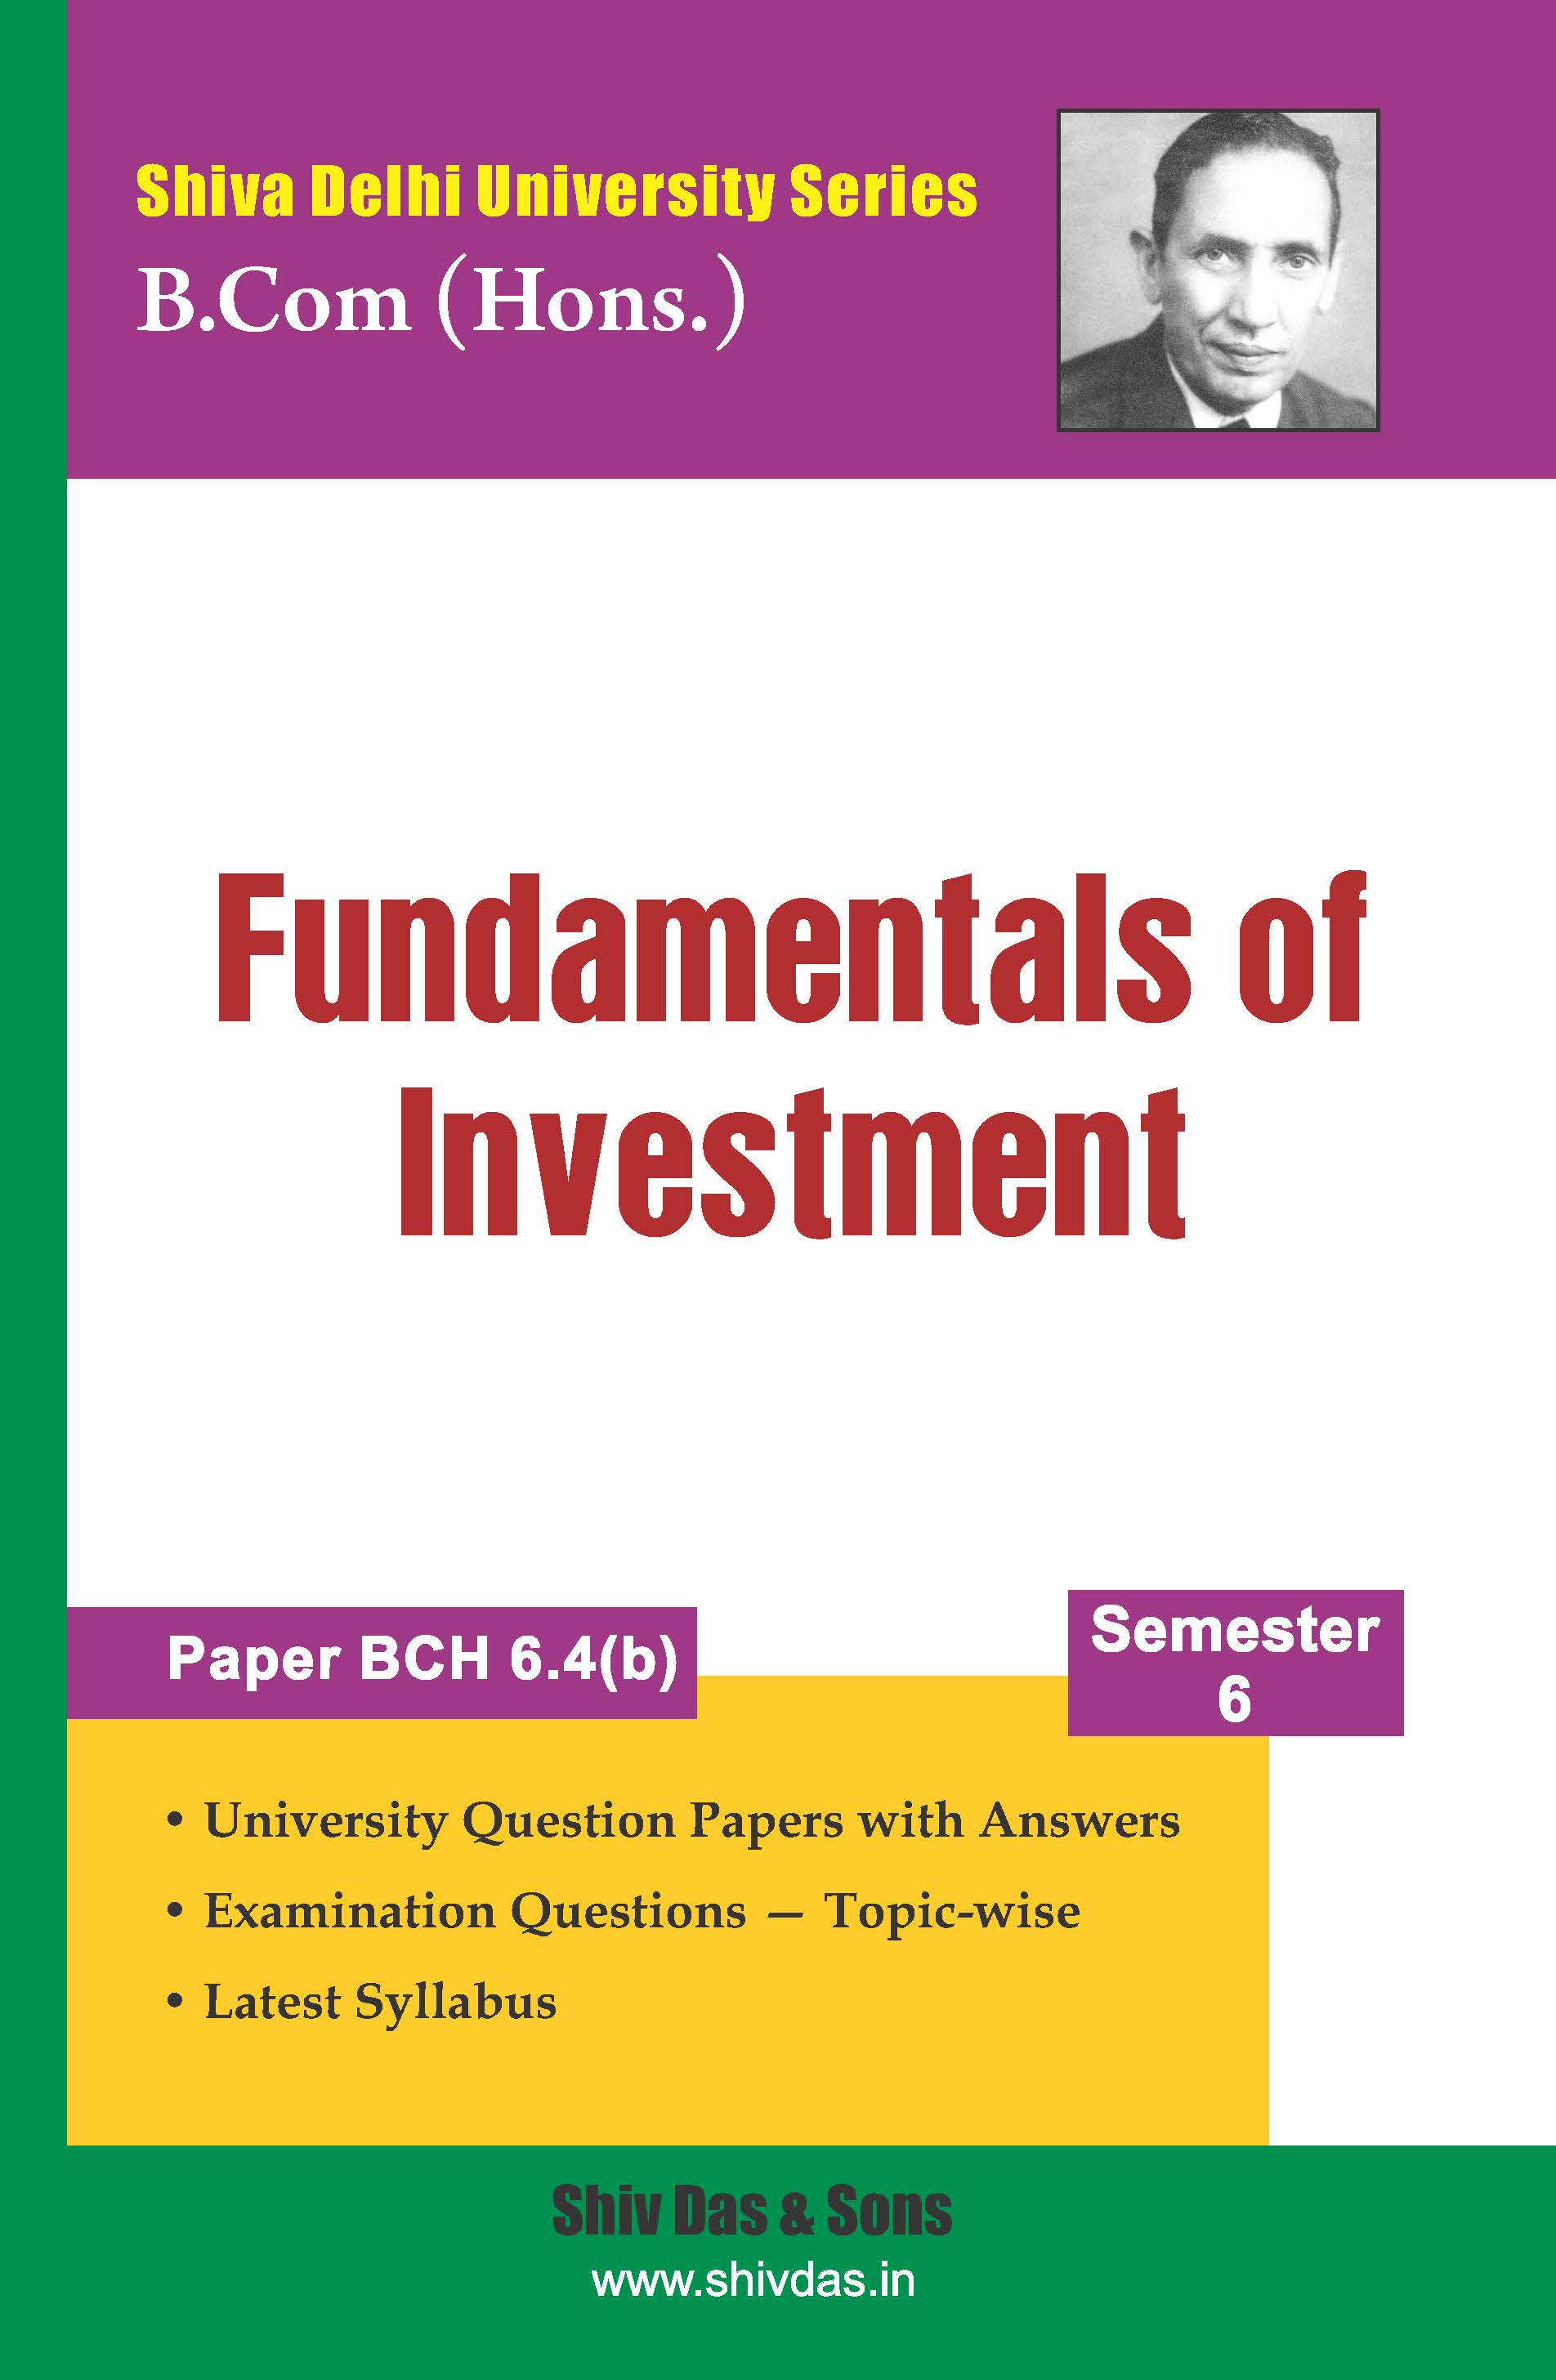 investment fundamentals Finance fundamentals develop your understanding of financial planning, budgeting, borrowing and investments with this flexible program of online courses from the open.